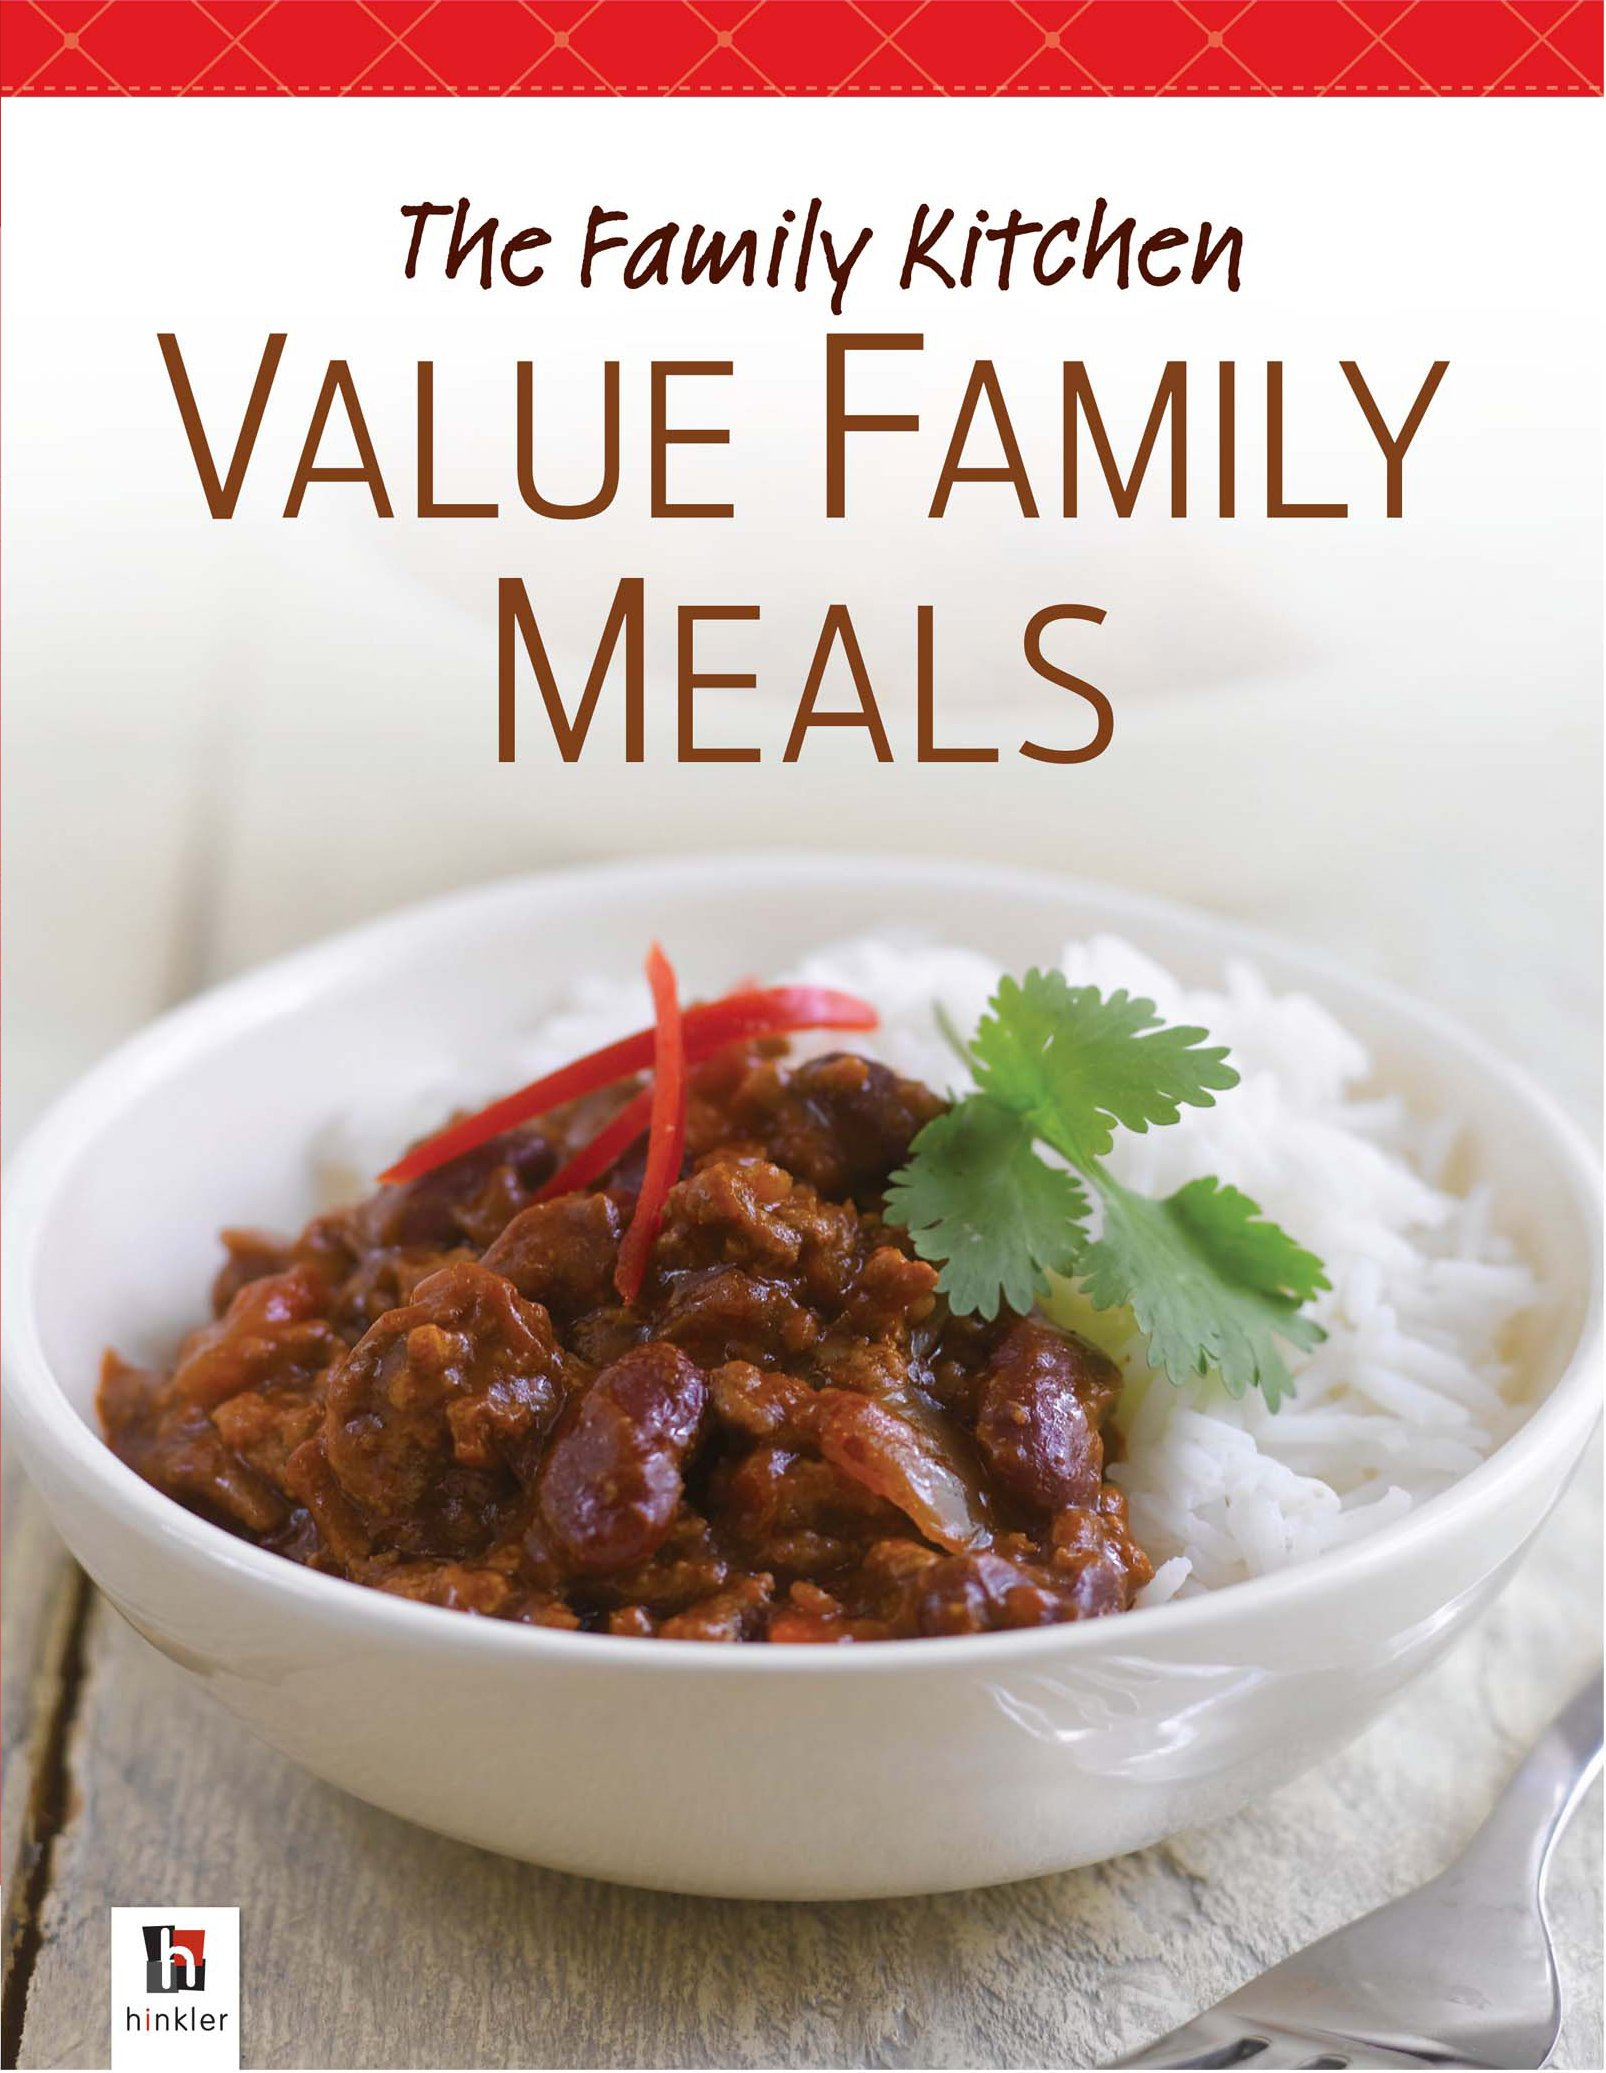 The Family Kitchen: Value Family Meals